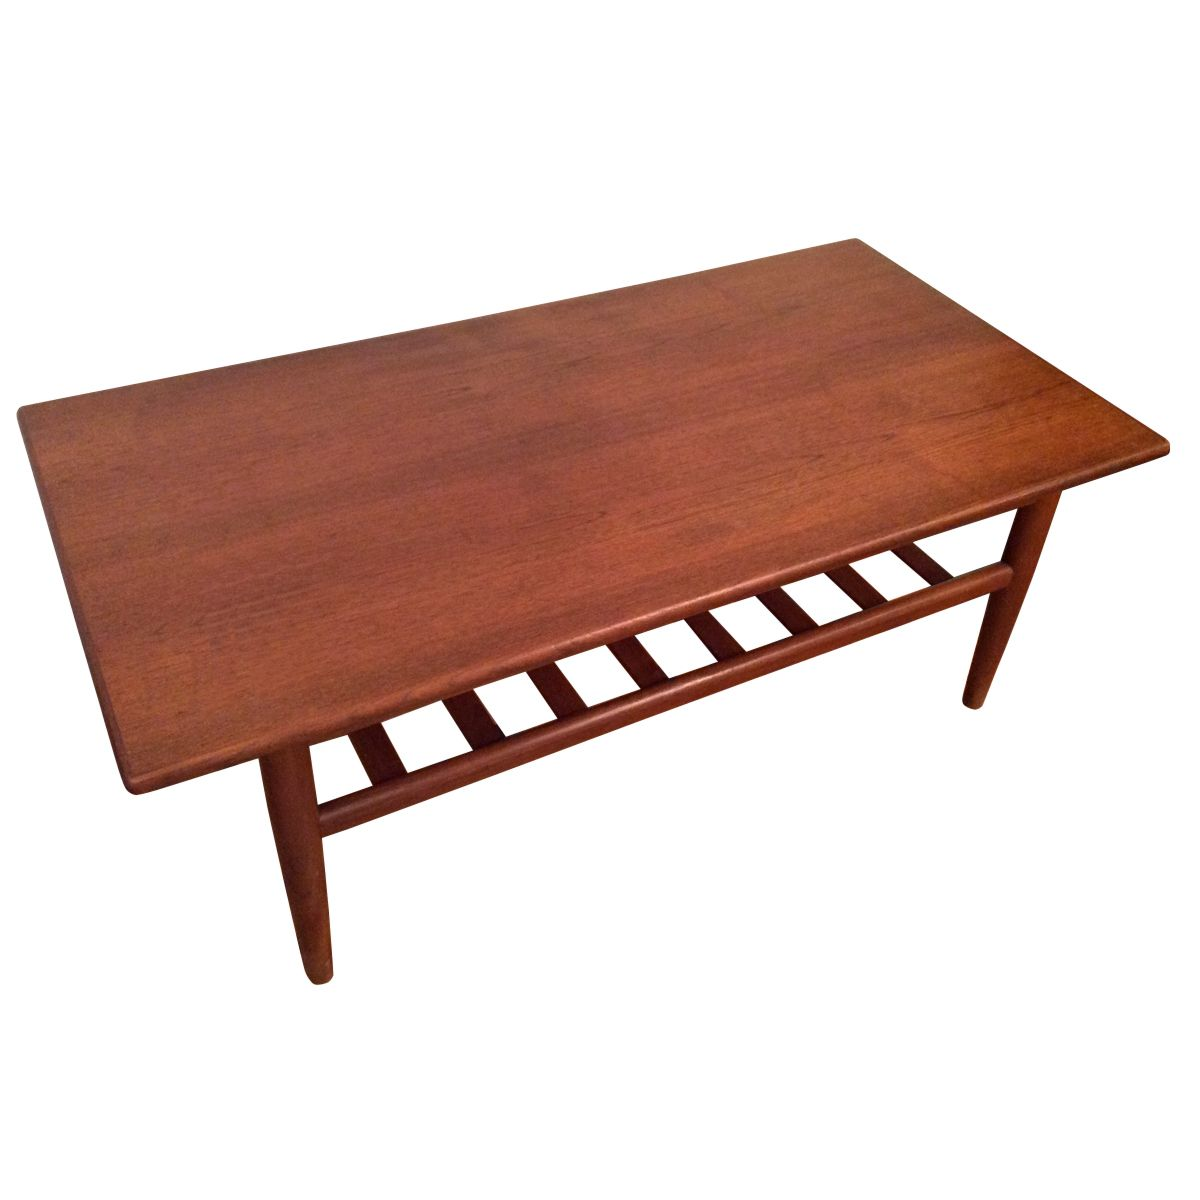 Teak Oil Coffee Table: Teak Danish Coffee Table For Sale At Pamono